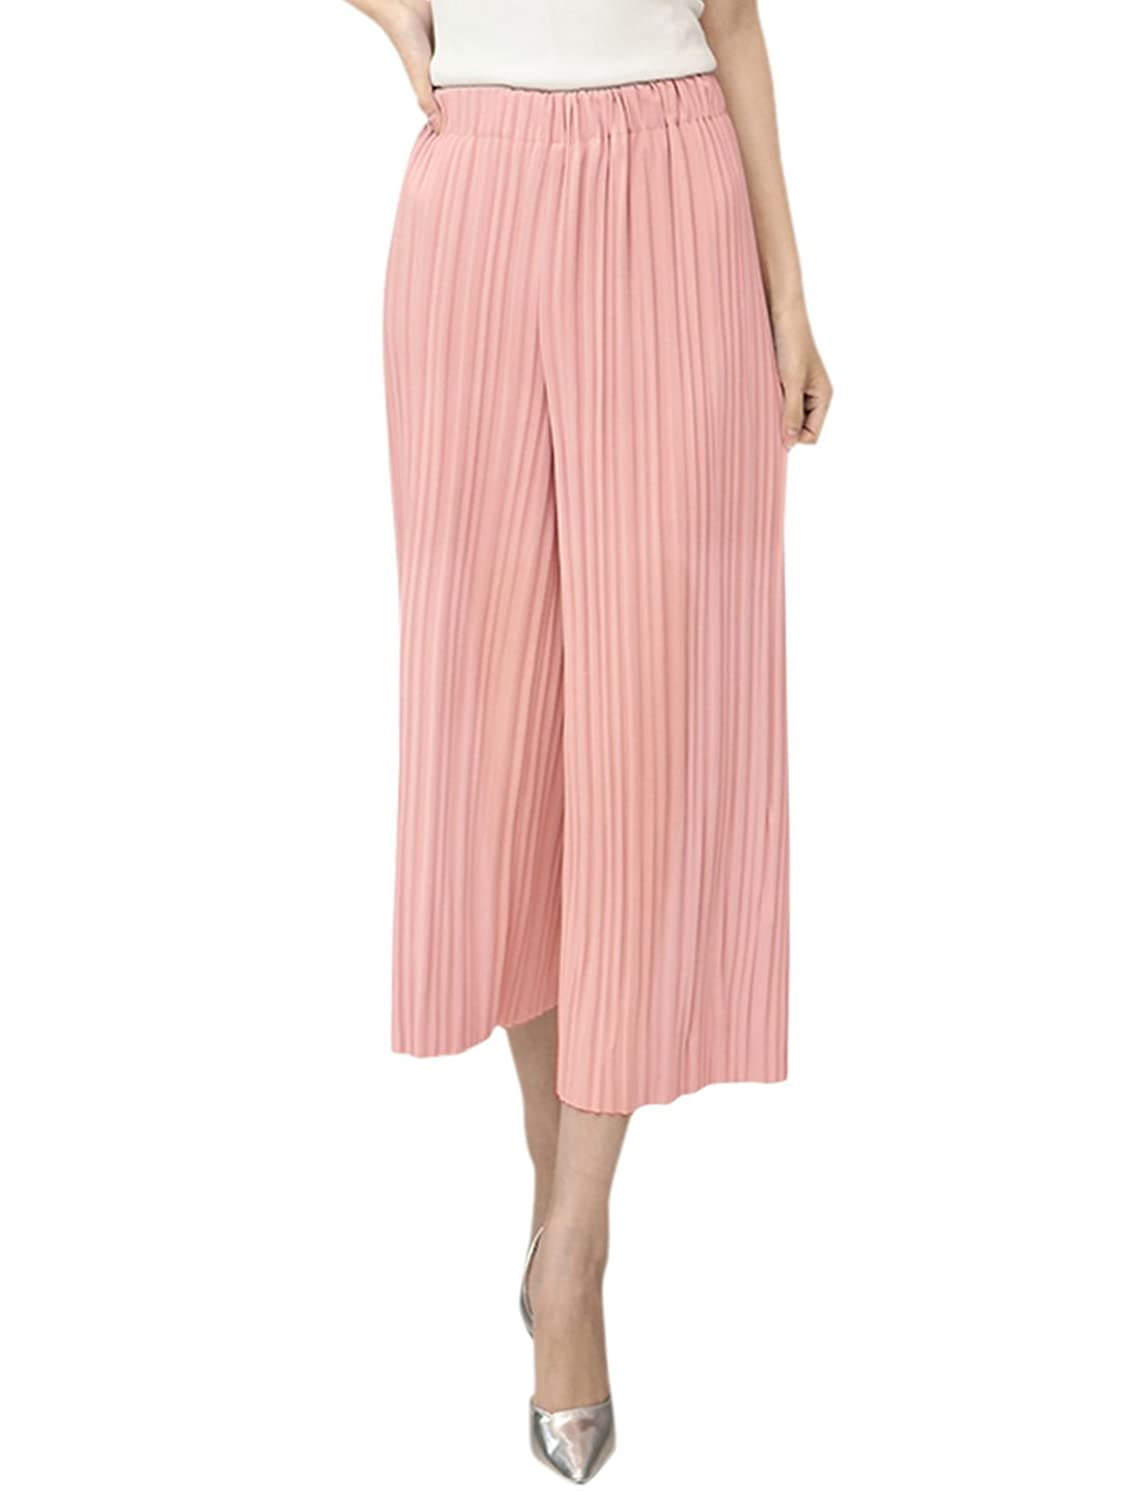 uxcell Women High Waist Semi Sheer Pleated Cropped Culottes